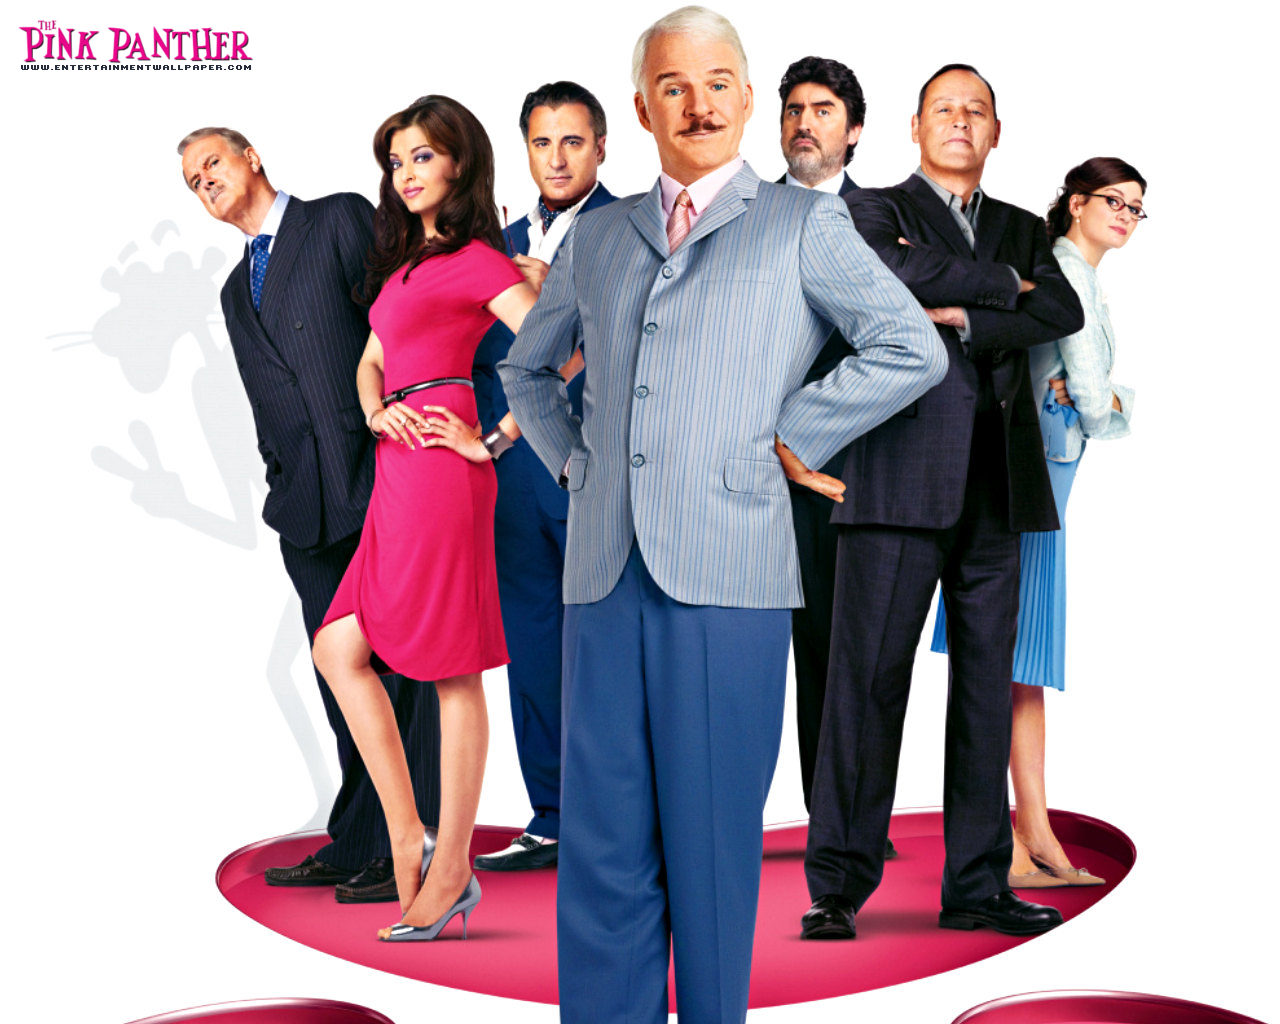 pink panther 2006 cast